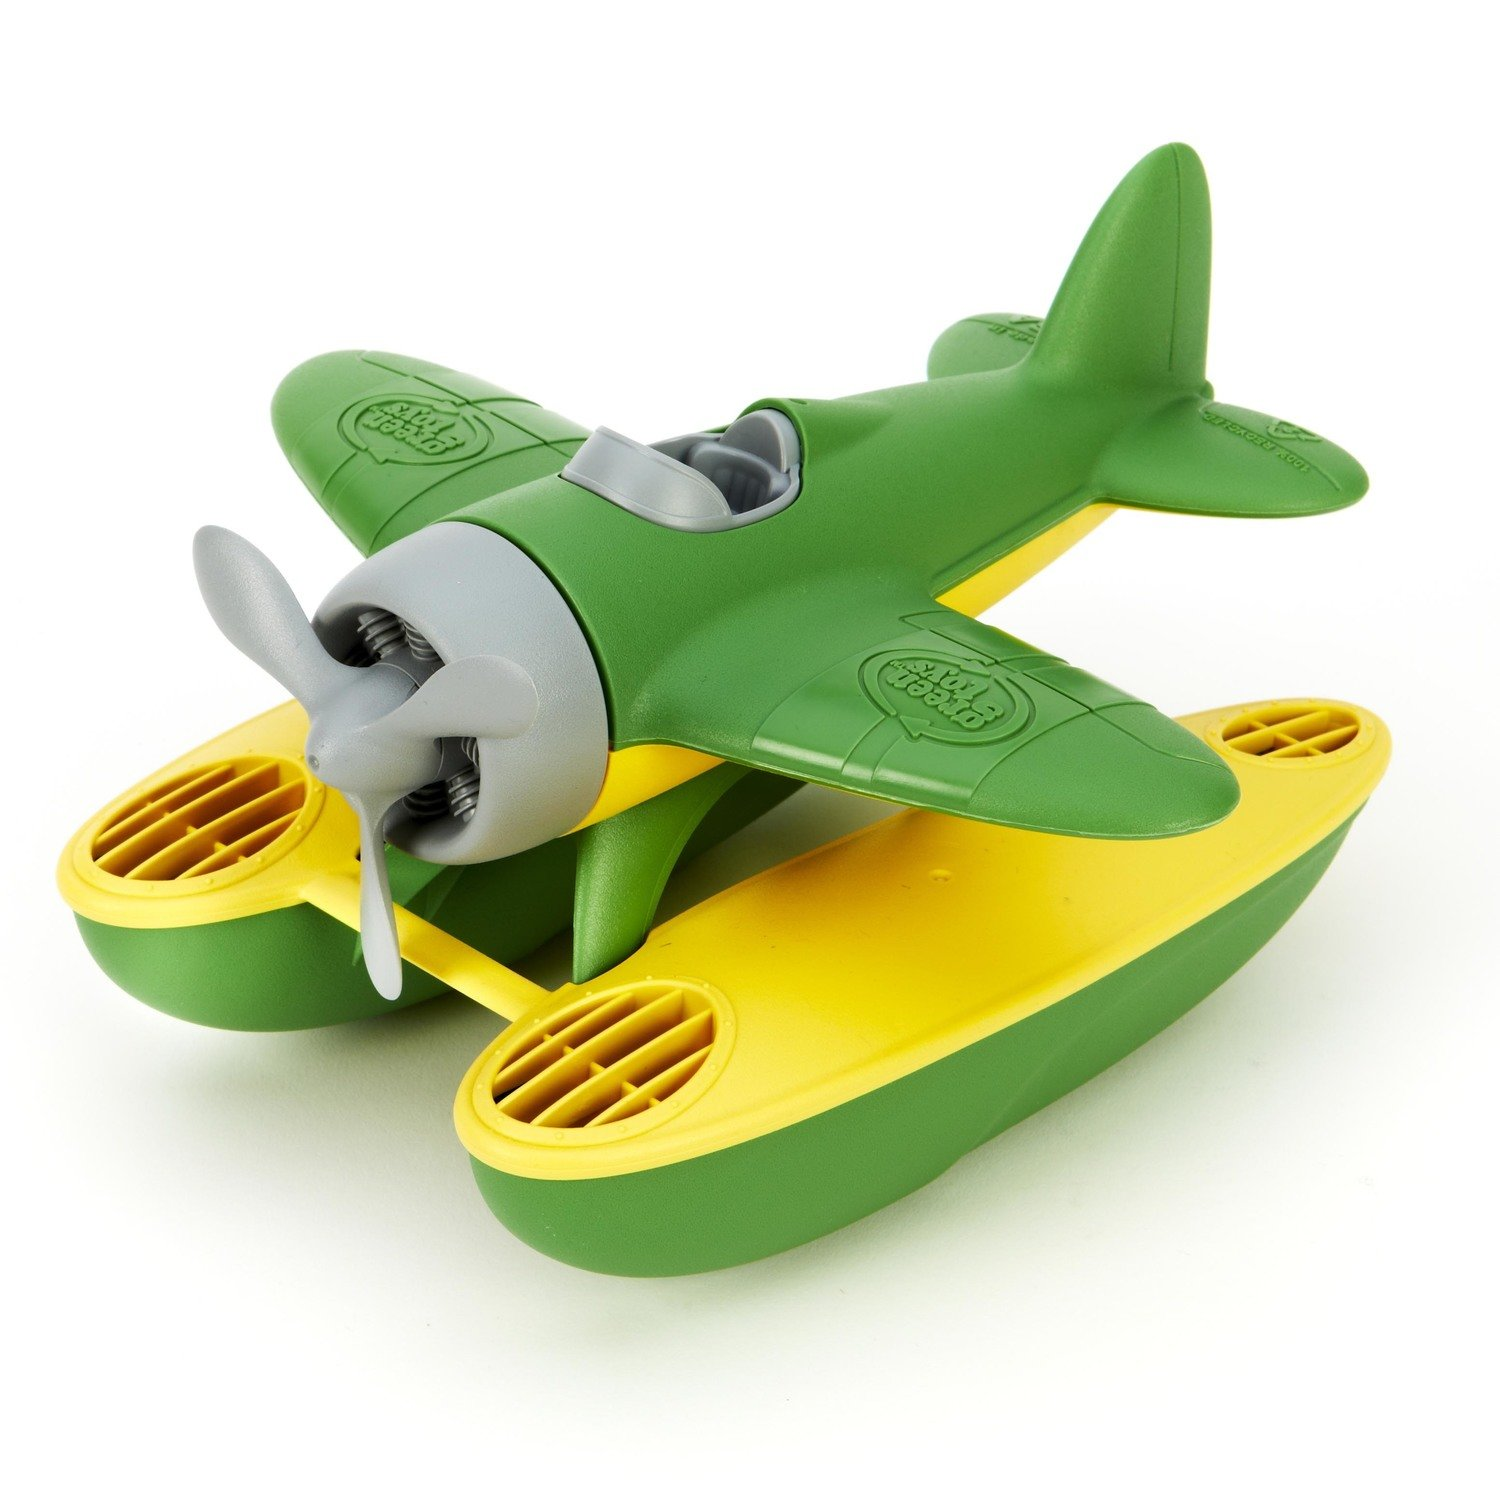 Seaplane (made from 100% recycled milk cartons)